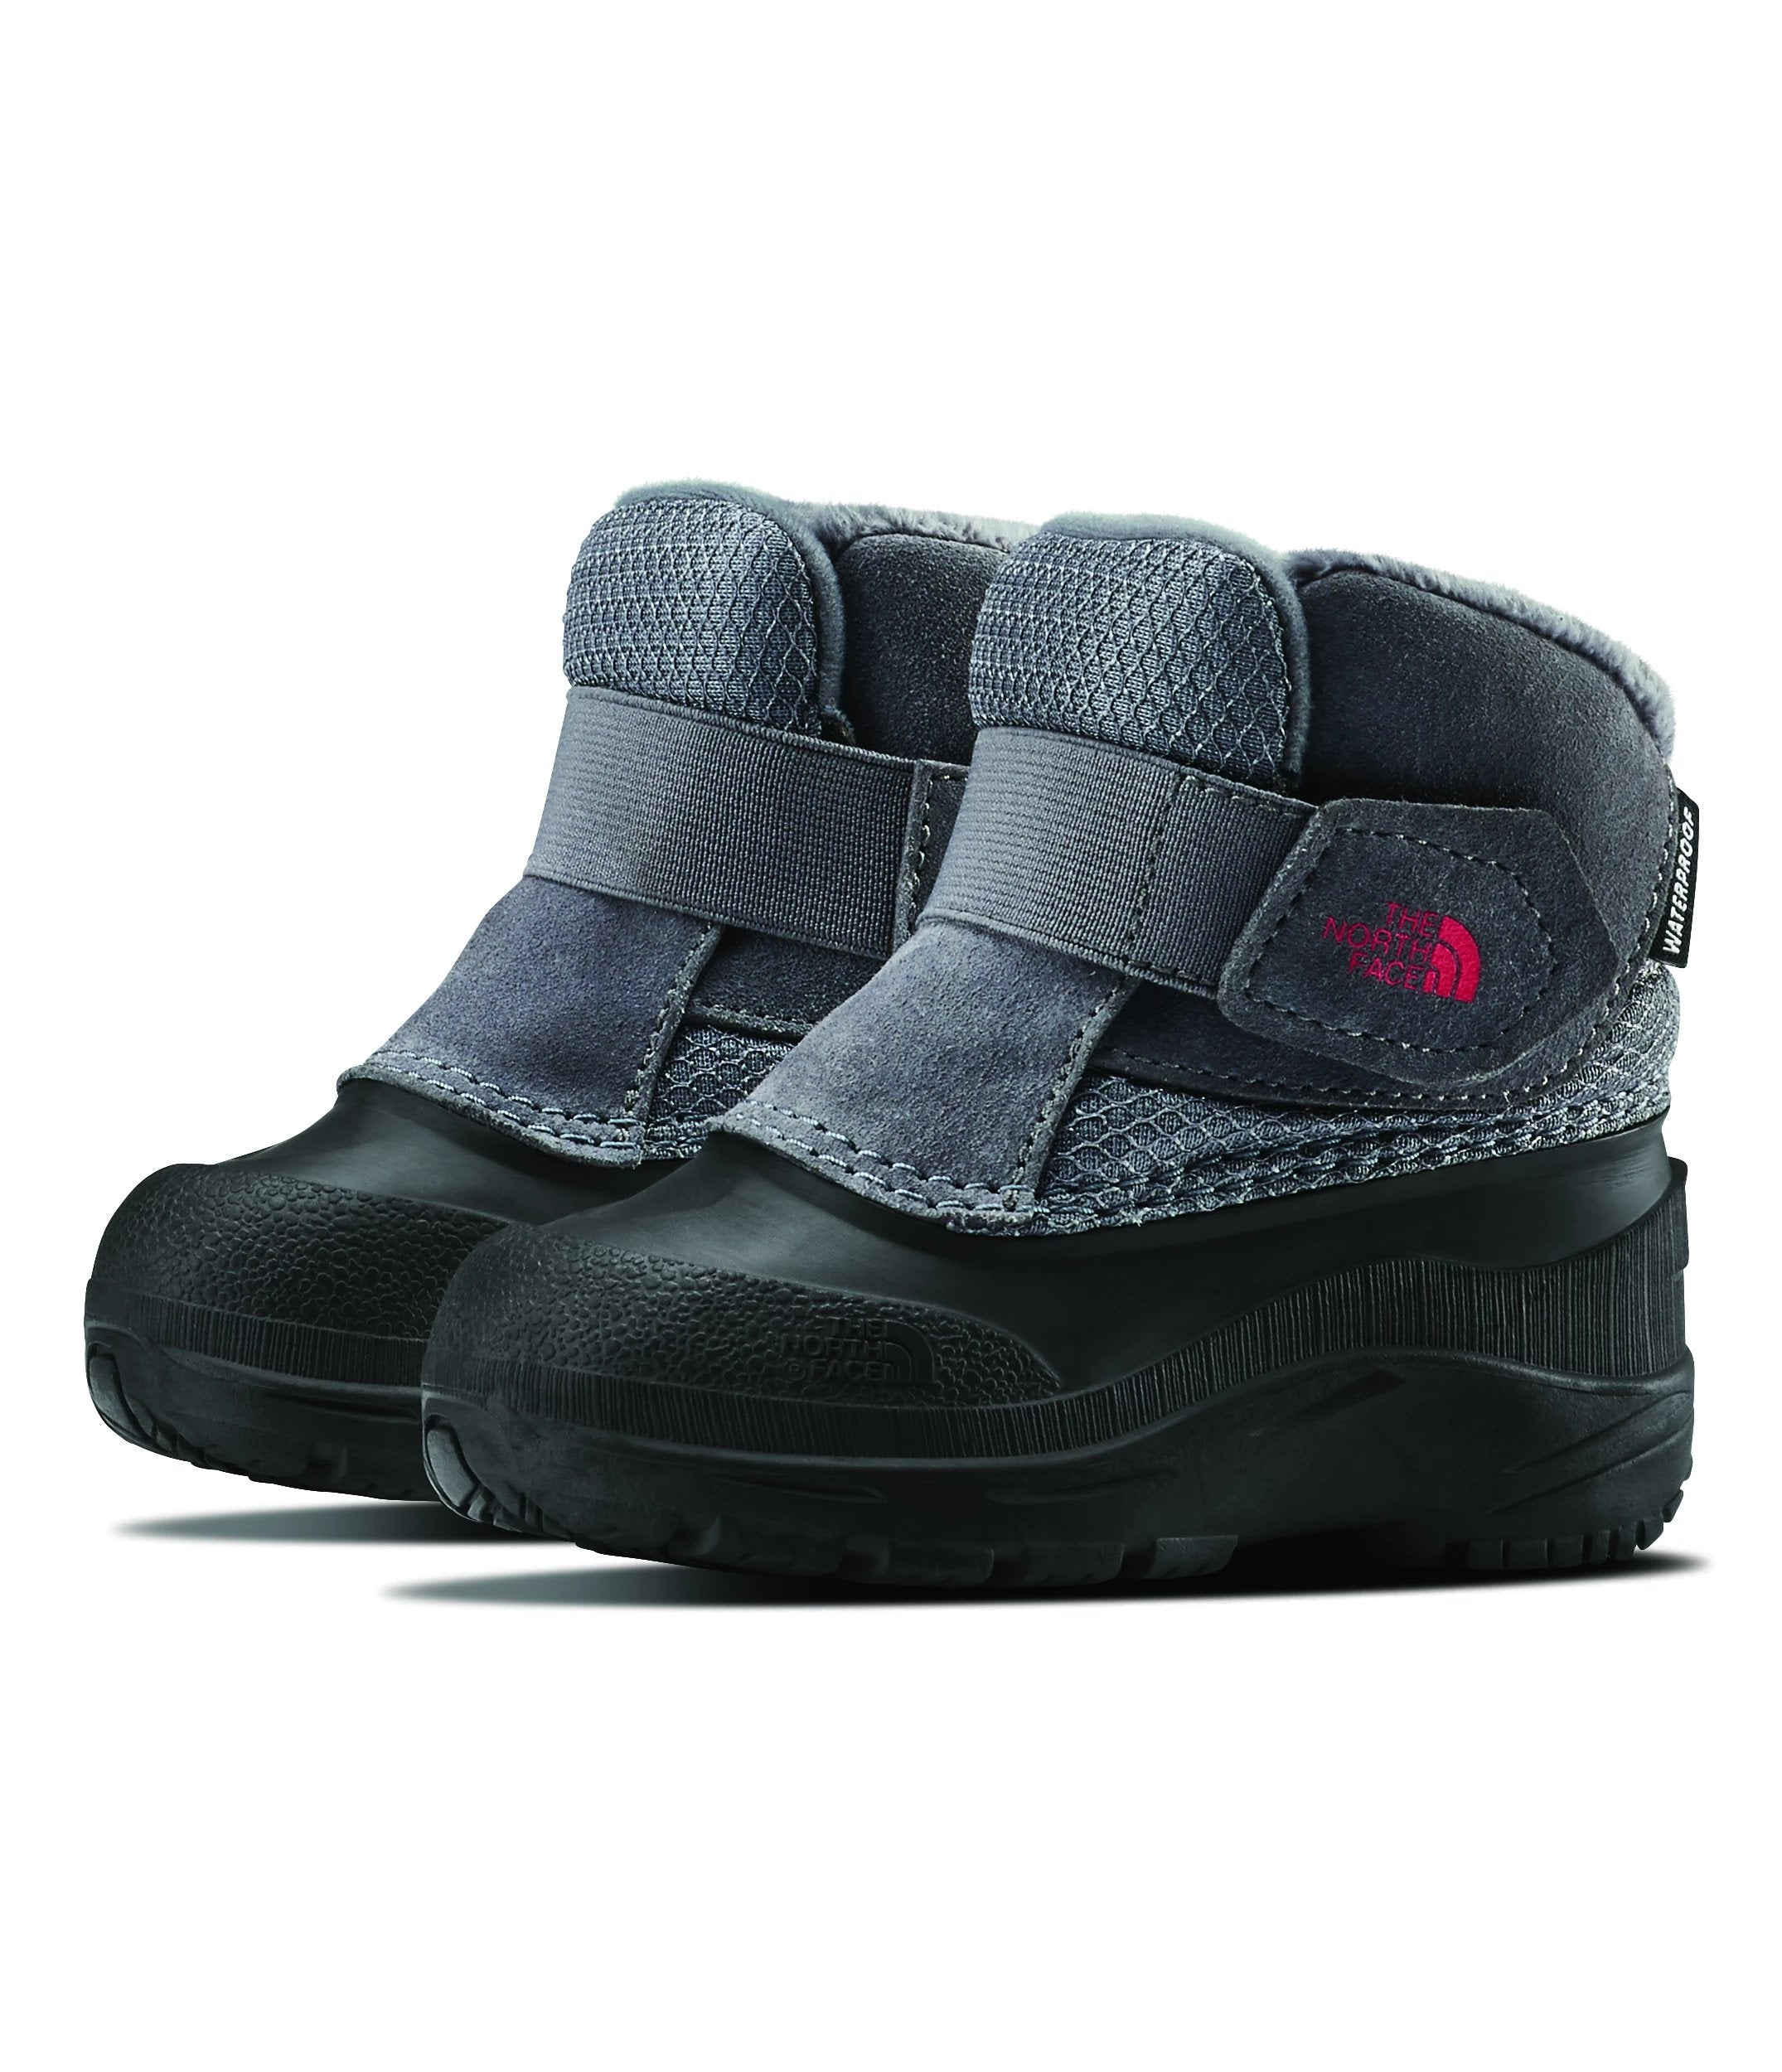 Toddler Alpenglow II - TNF Black / Zinc Grey